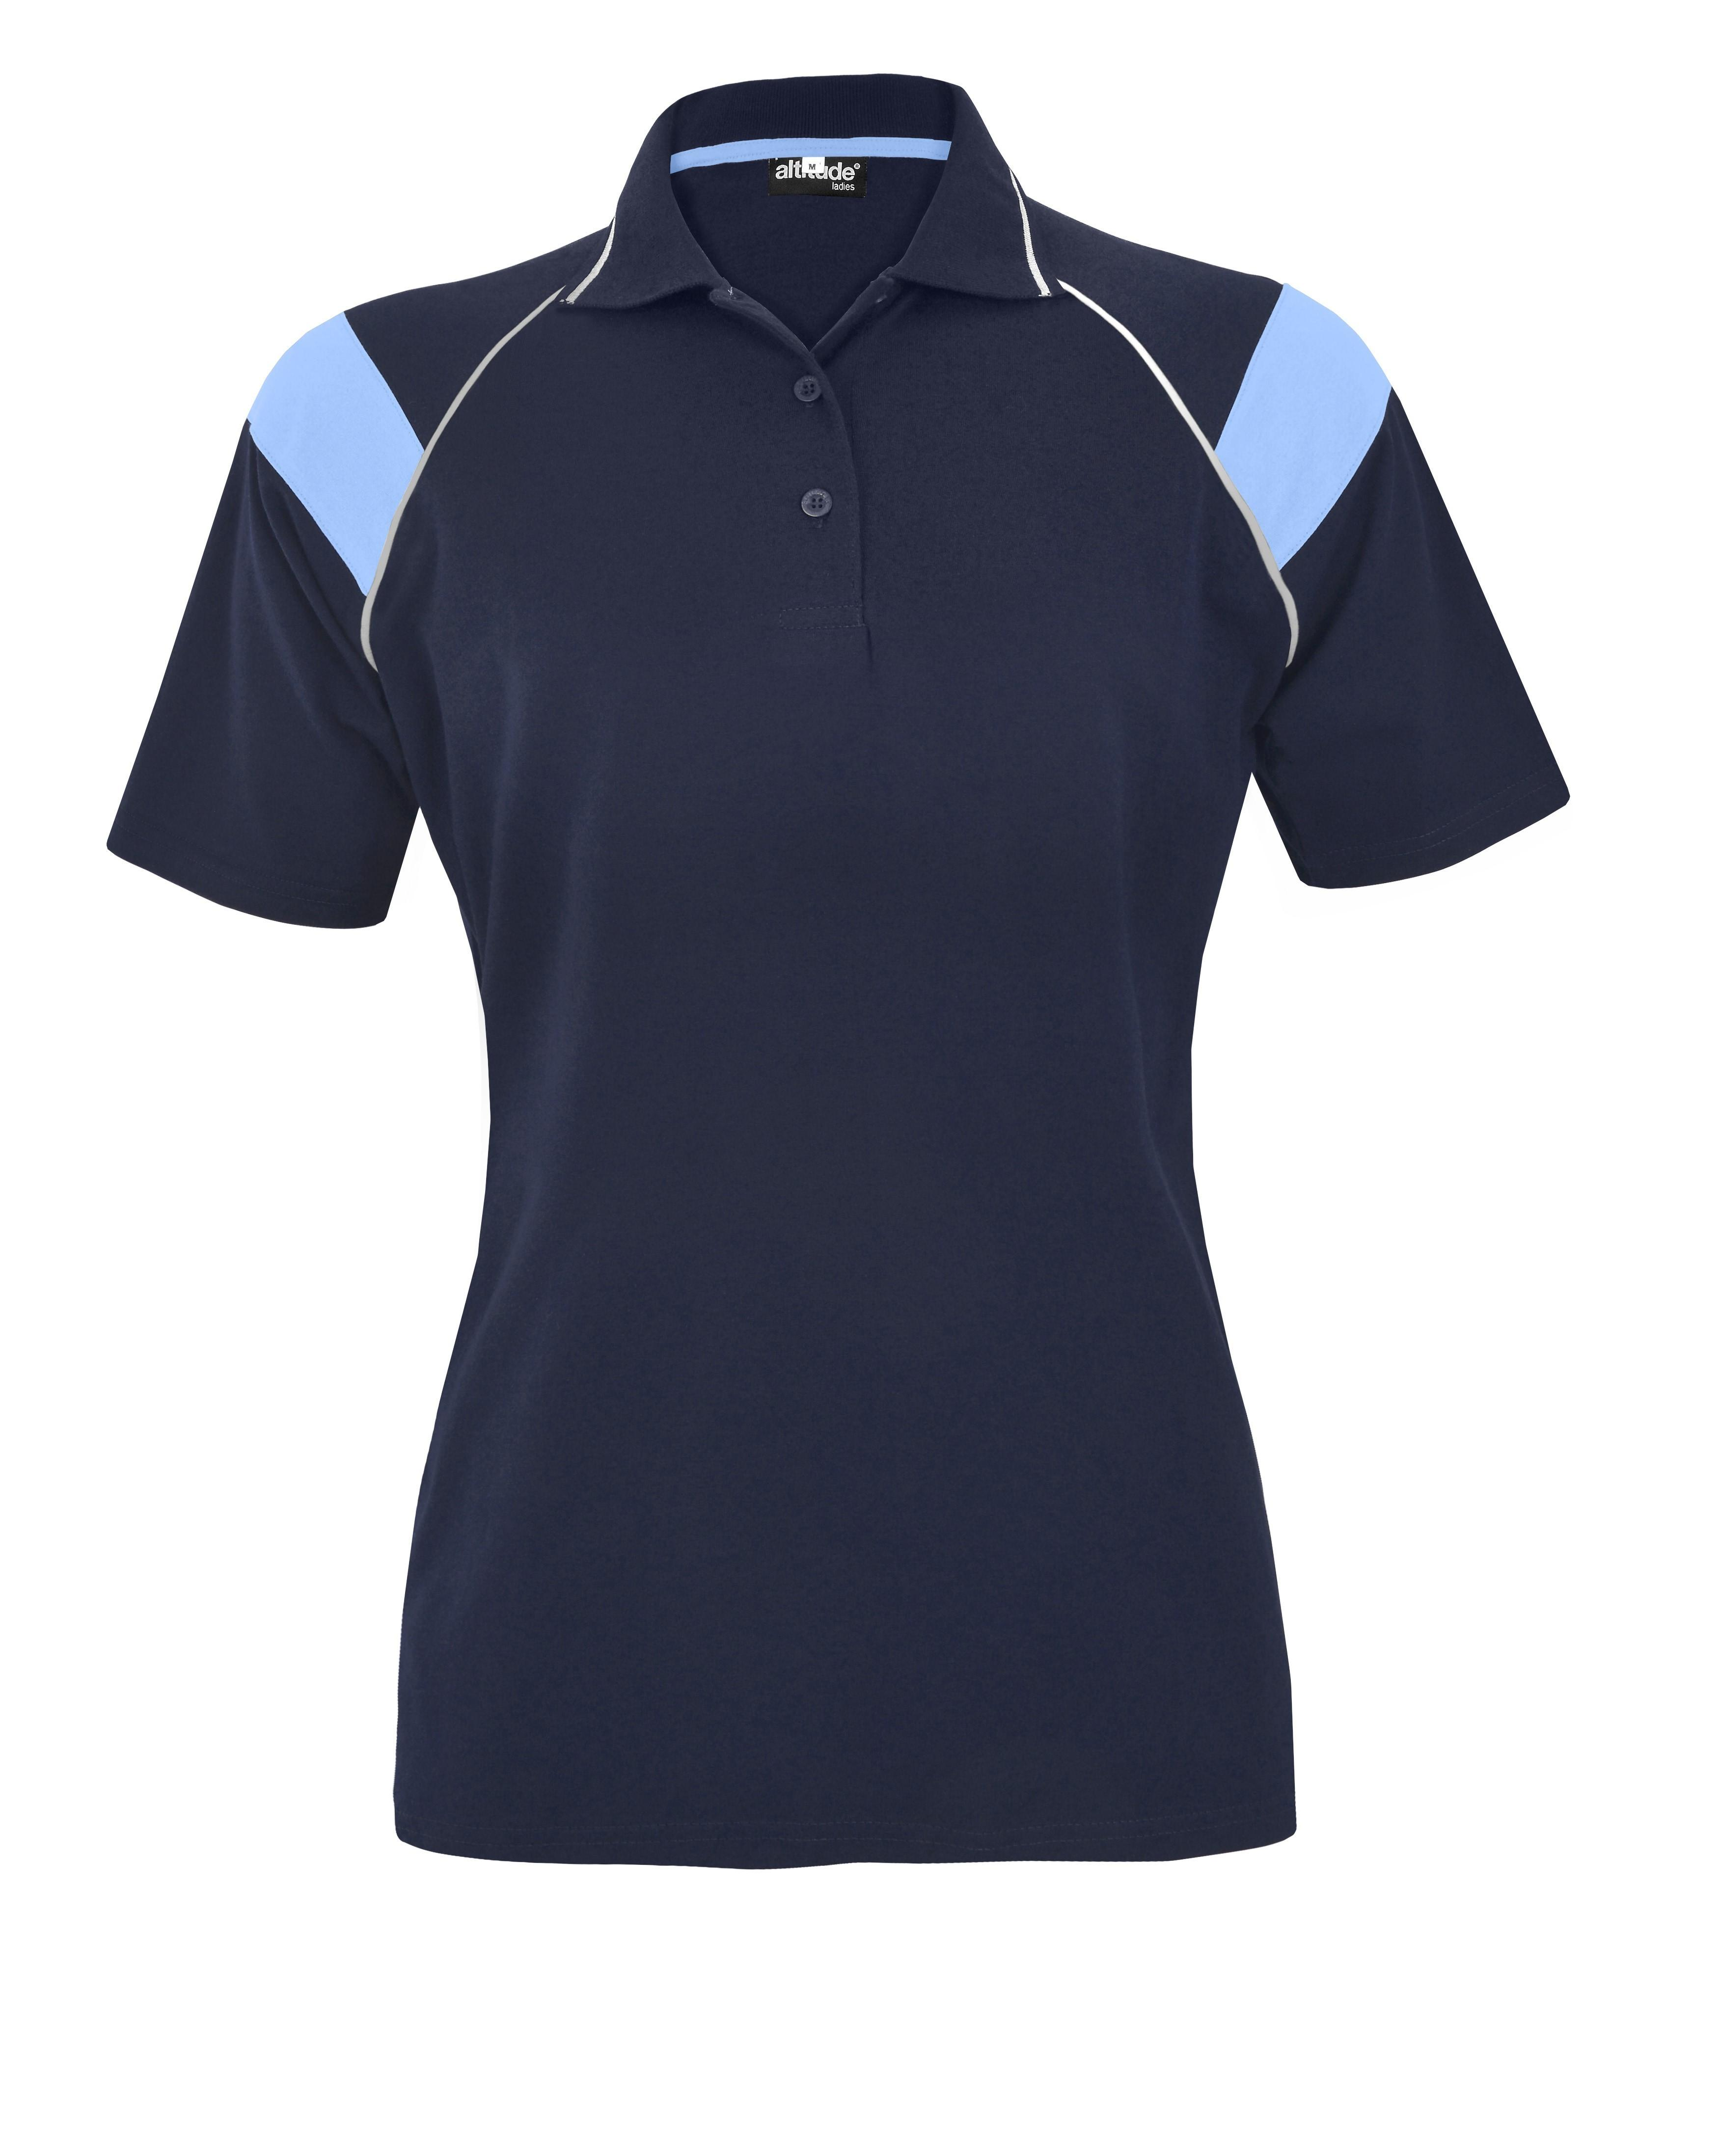 Ladies Score Golf Shirt - Navy And Light Blue Only